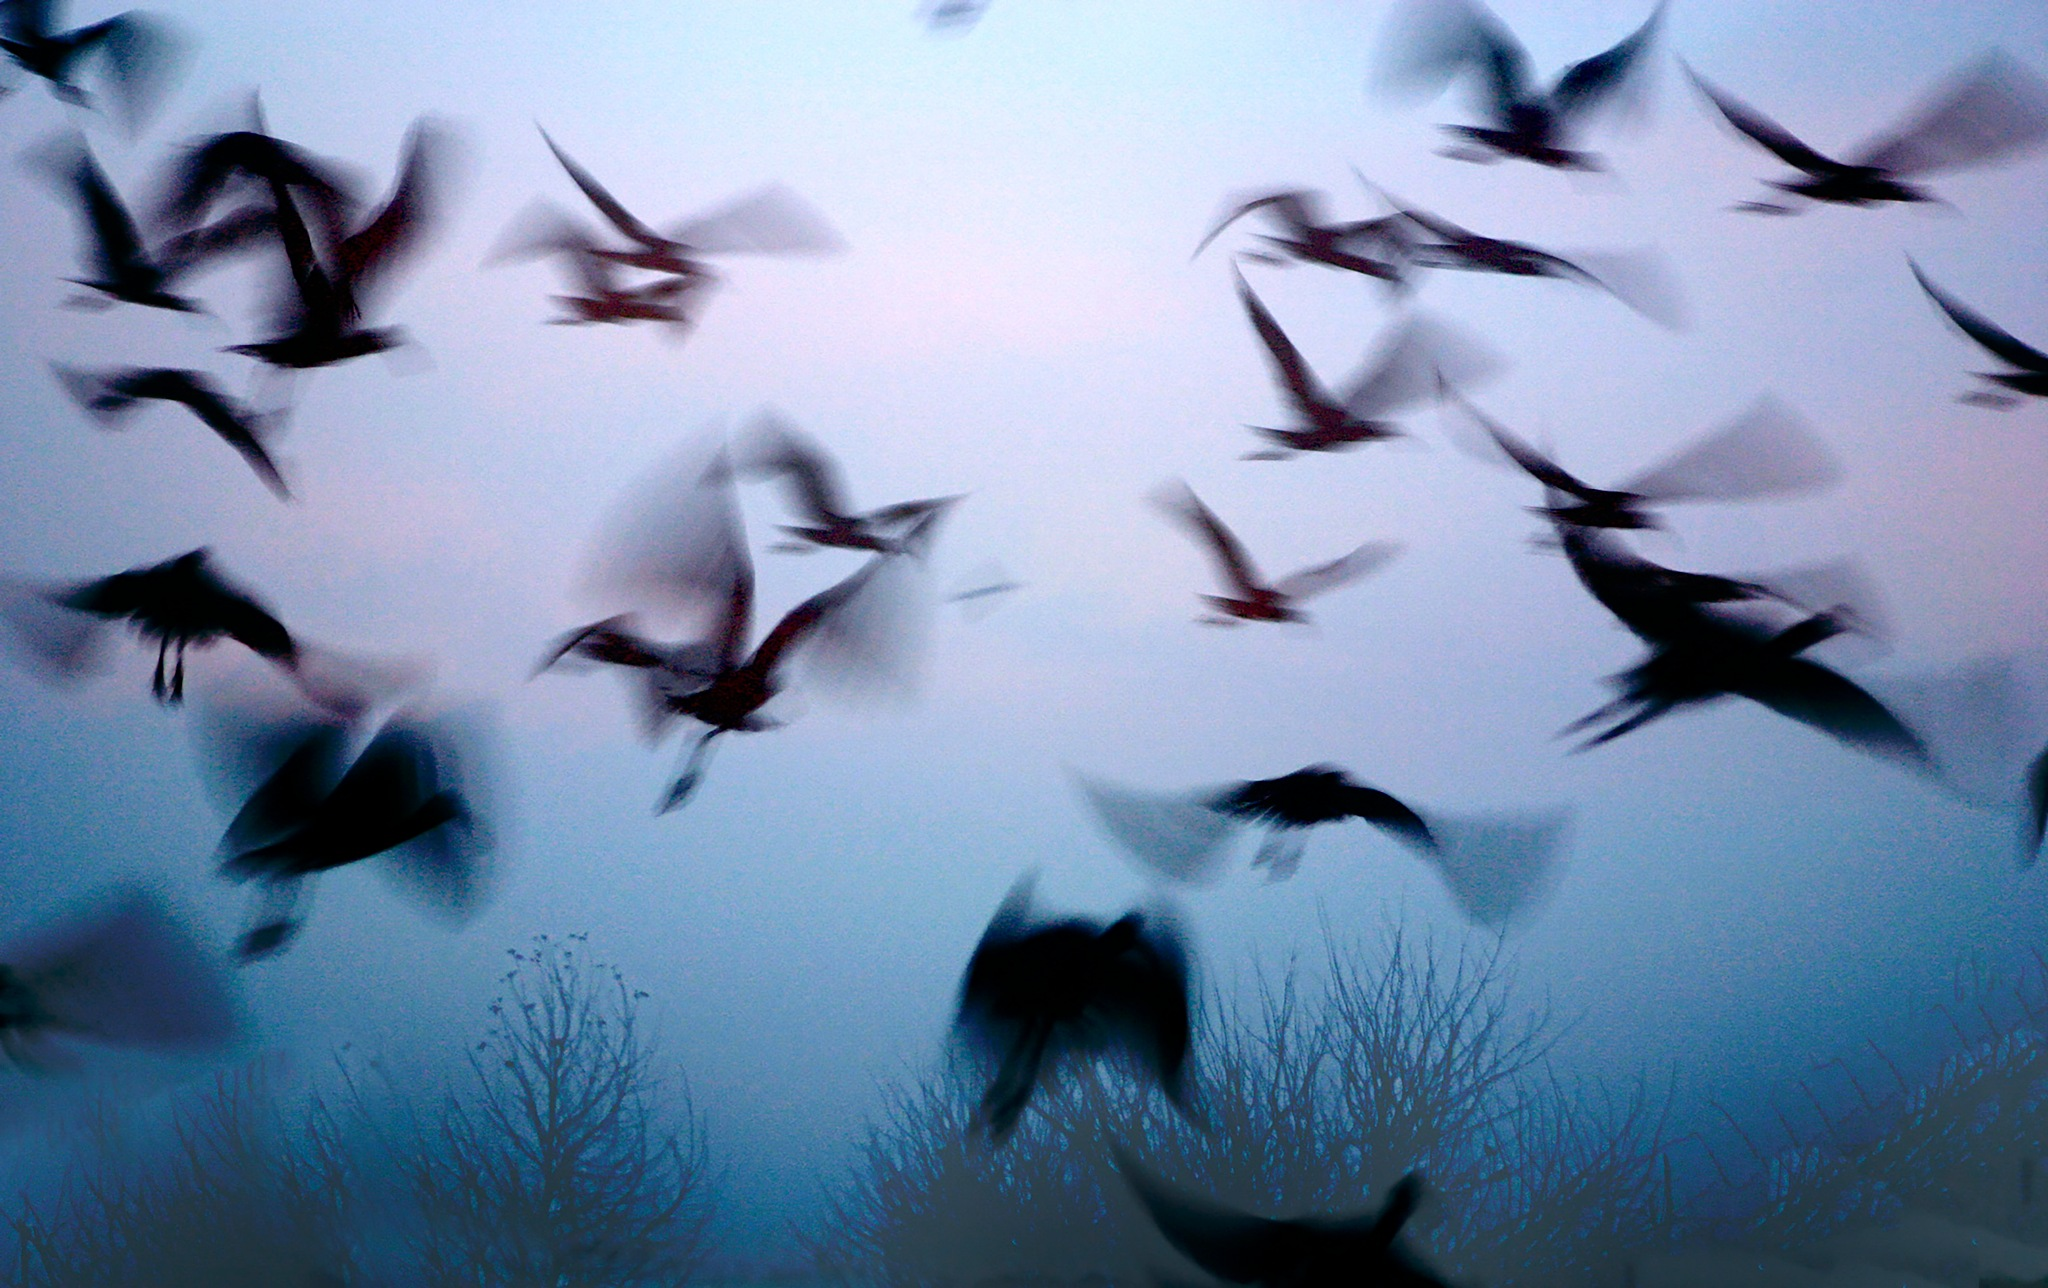 The Cranes in flight early morning by Rebecca Danieli